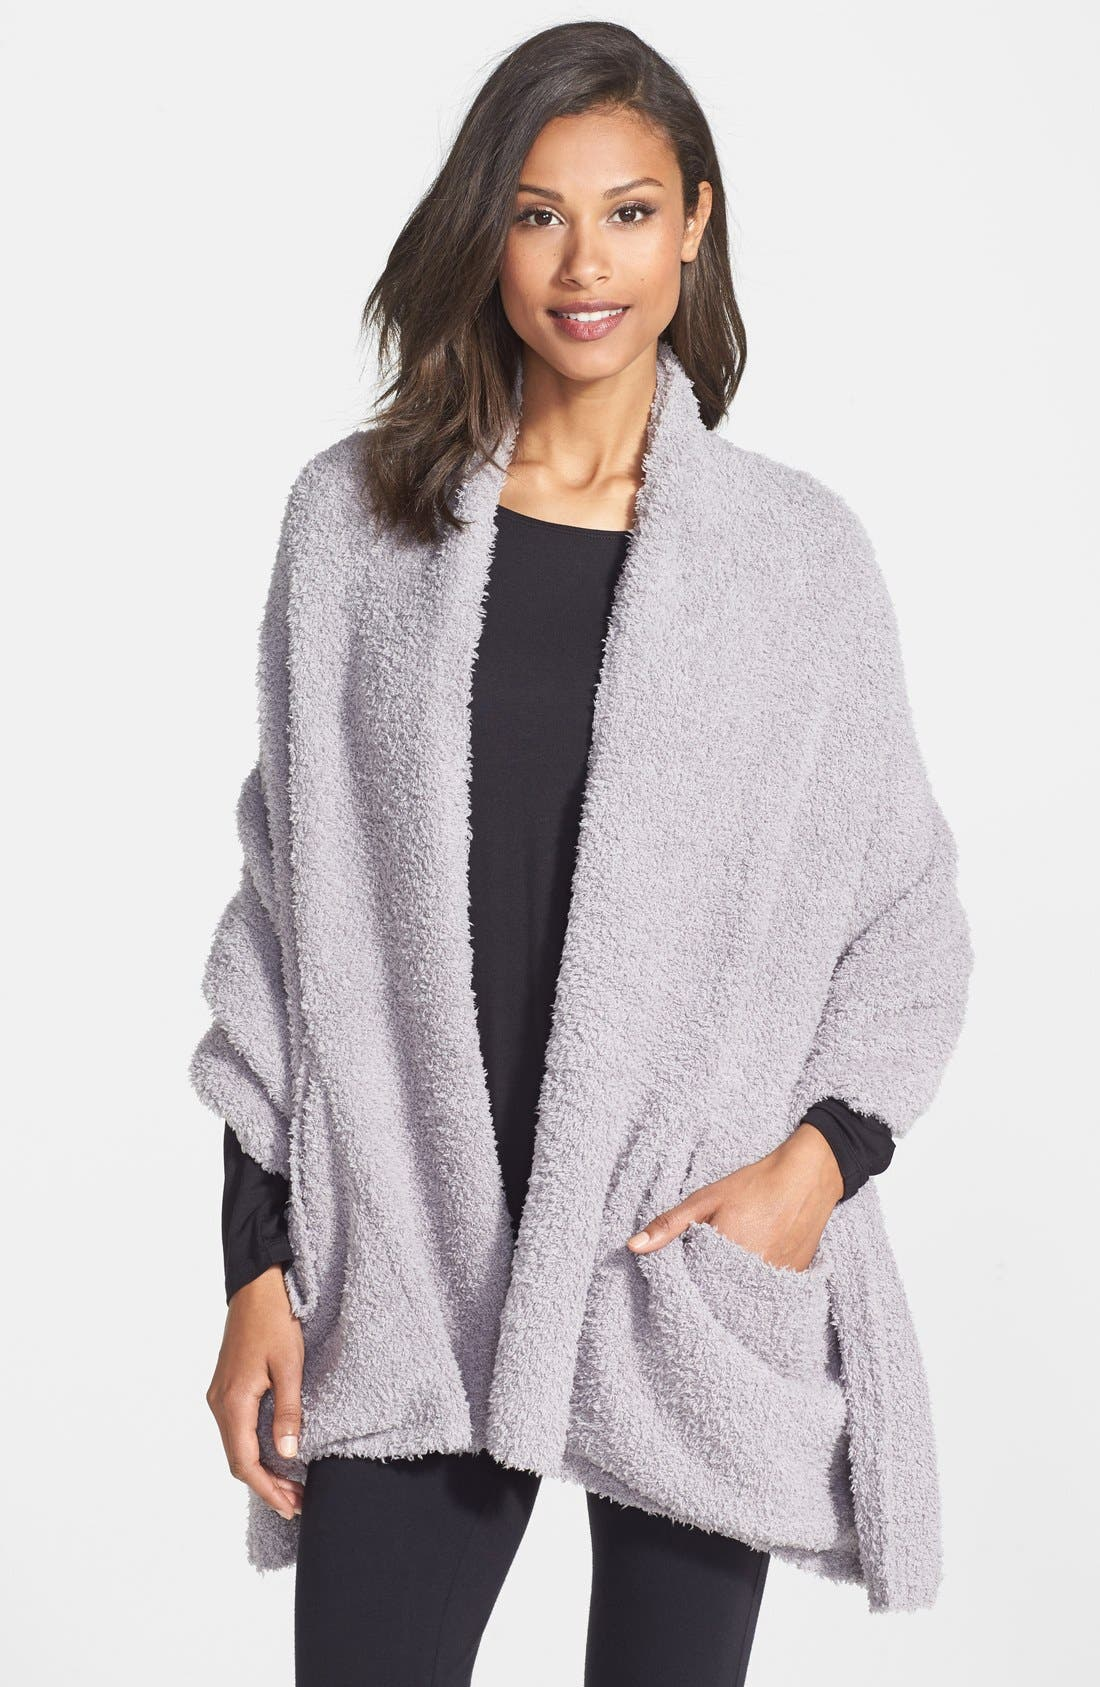 Barefoot Dreams Cozychic Travel Shawl, Size One Size - Grey (Online Only)